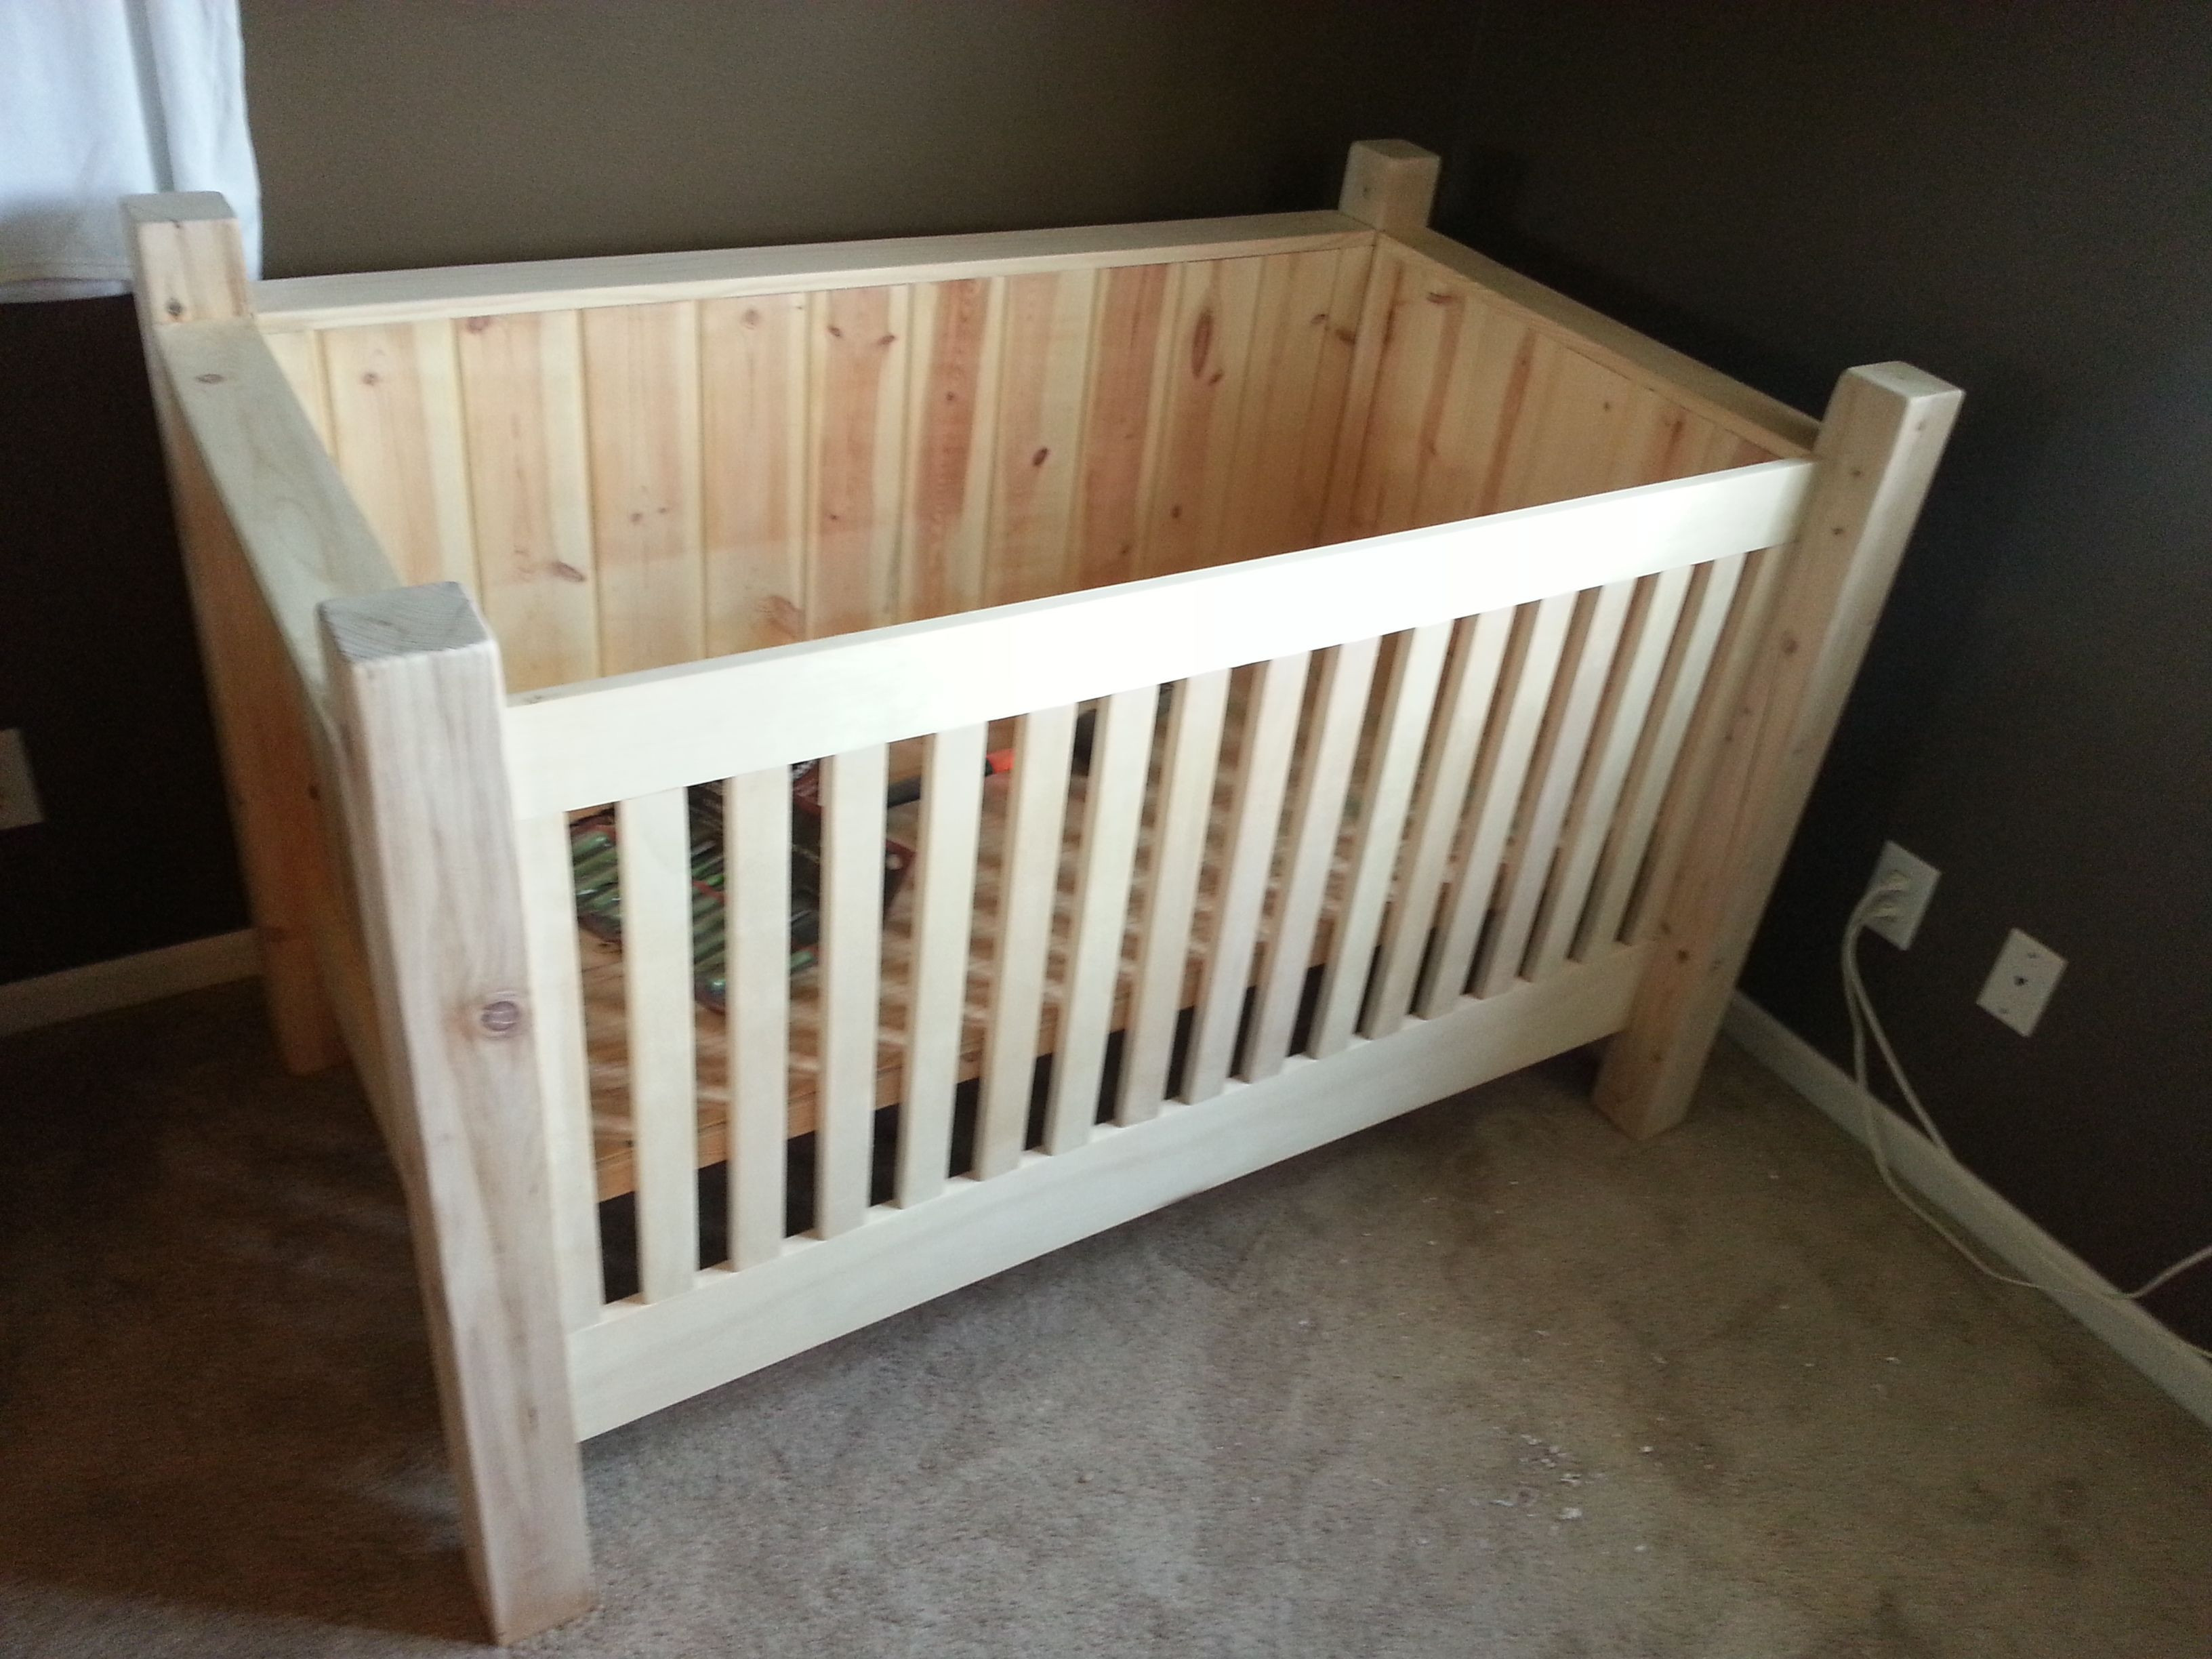 Best ideas about DIY Baby Crib . Save or Pin DIY Wood Crib This is another option if doing all tree Now.